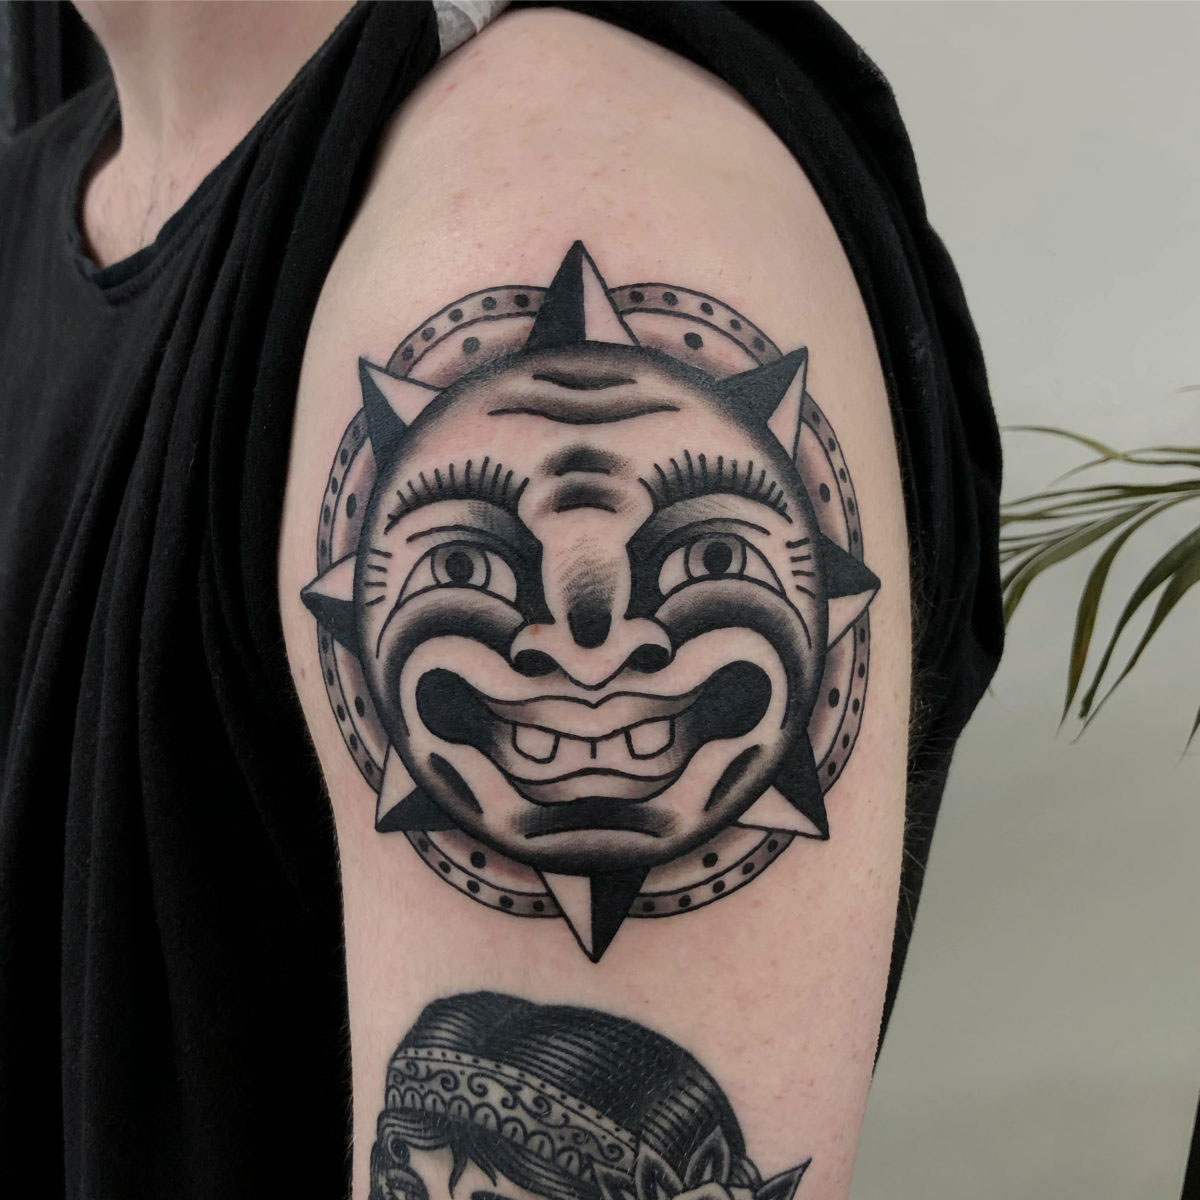 Traditional blackwork tattoo of a sun with a face inspired by bert grimm tattooed on the upper arm in black and grey